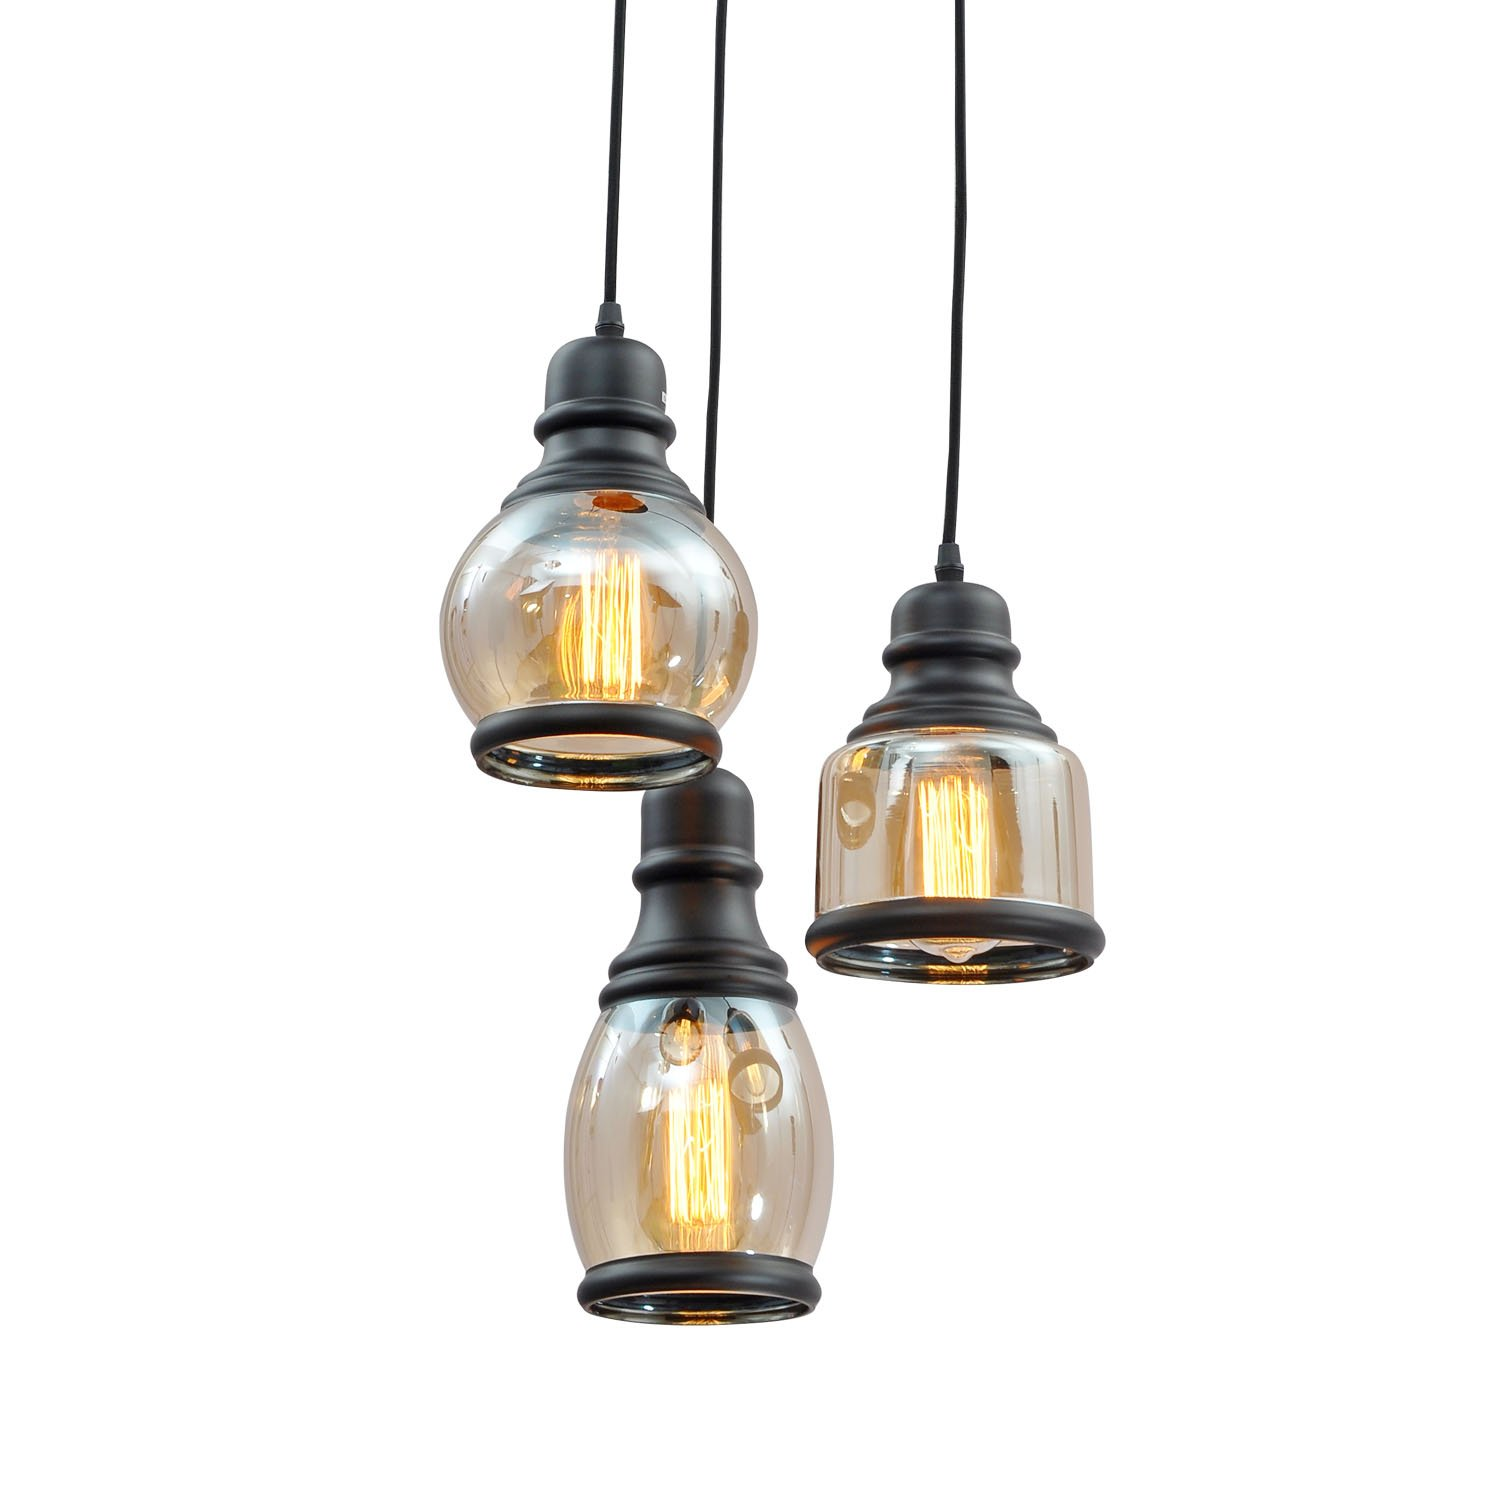 Glass jar pendant light Canning Jar Unitary Brand Antique Black Shade Glass Jar Pendant Light Max 120w With Lights Painted Finish Amazoncom Amazoncom Unitary Brand Antique Black Shade Glass Jar Pendant Light Max 120w